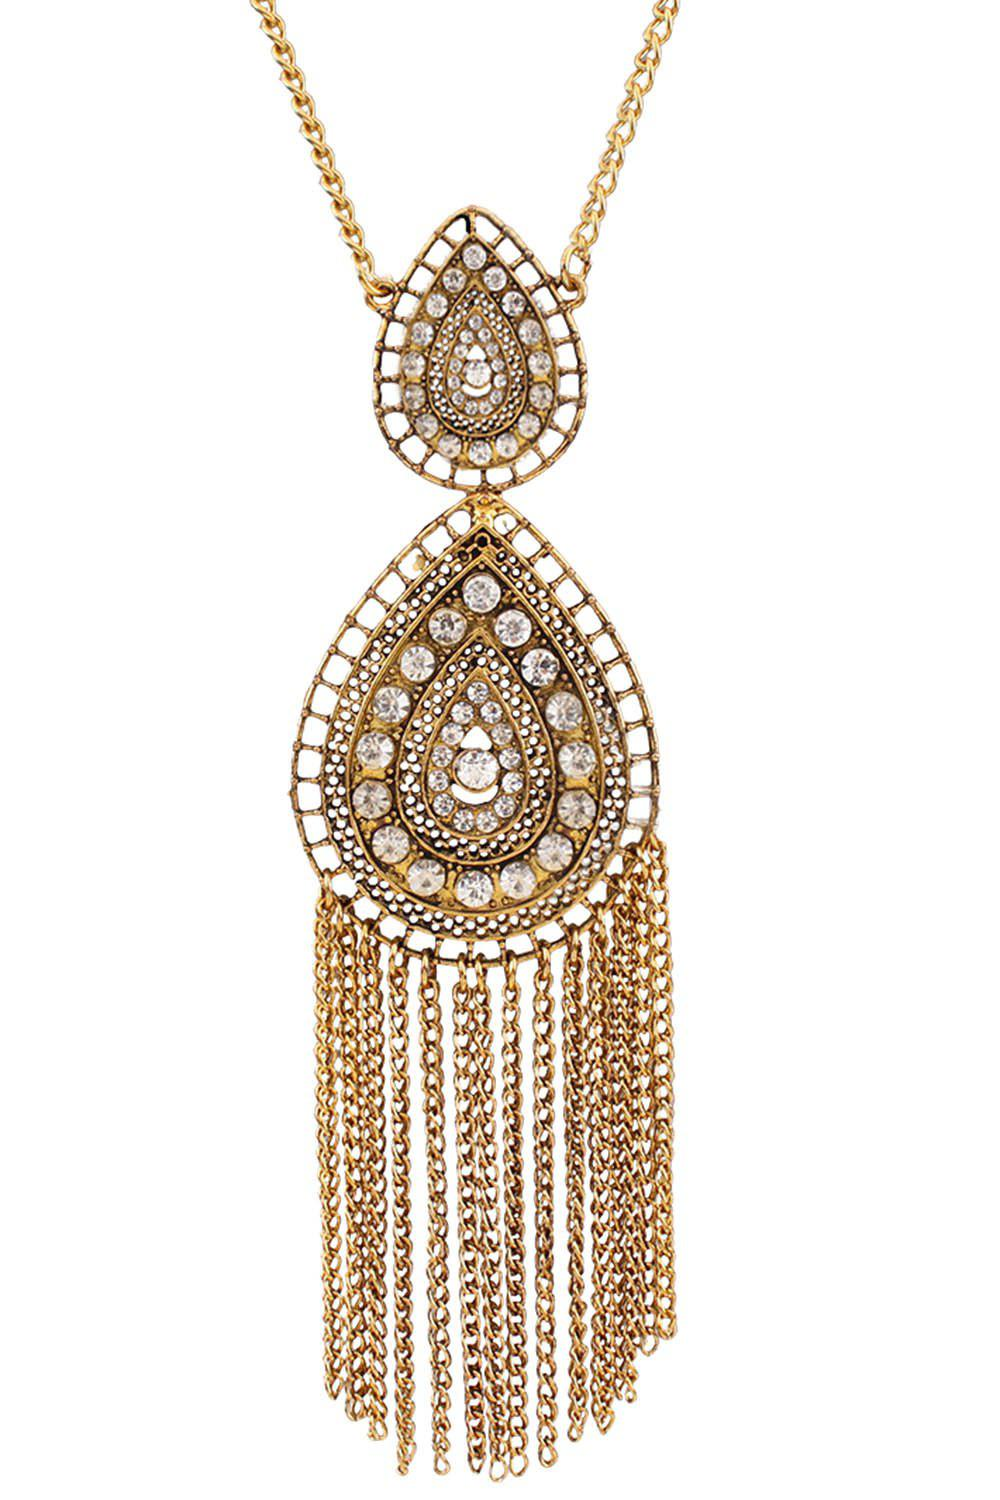 Vintage Rhinestone Water Drop Fringed Necklace